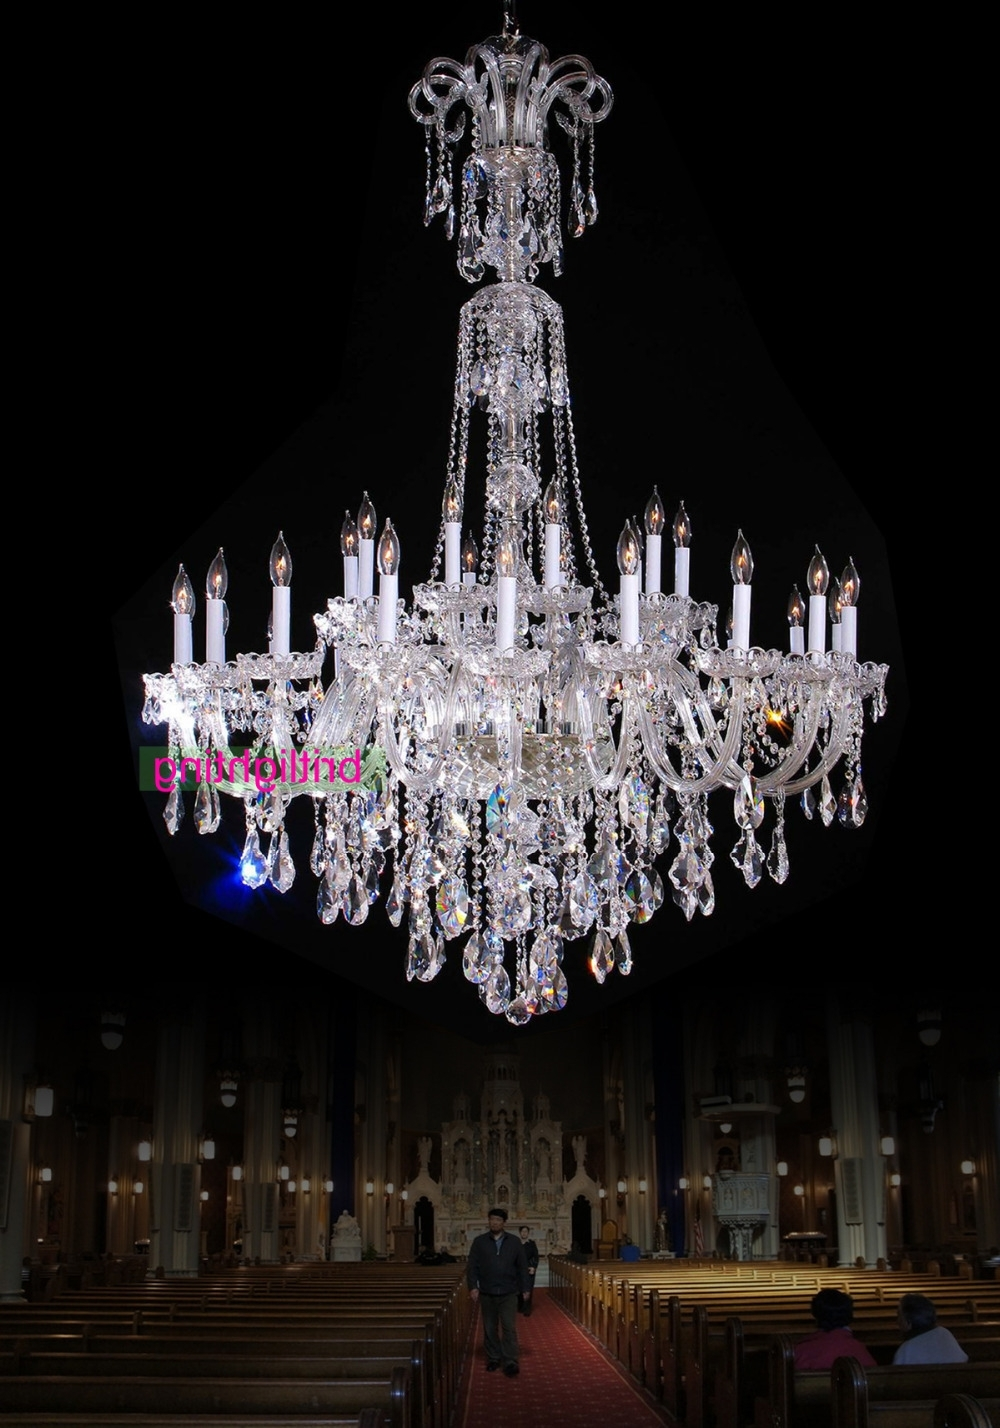 Extra Large Chandeliers Pertaining To Most Current Large Chandelier With Crystal Pendants Big Lamp For Hotel Extra (View 10 of 20)